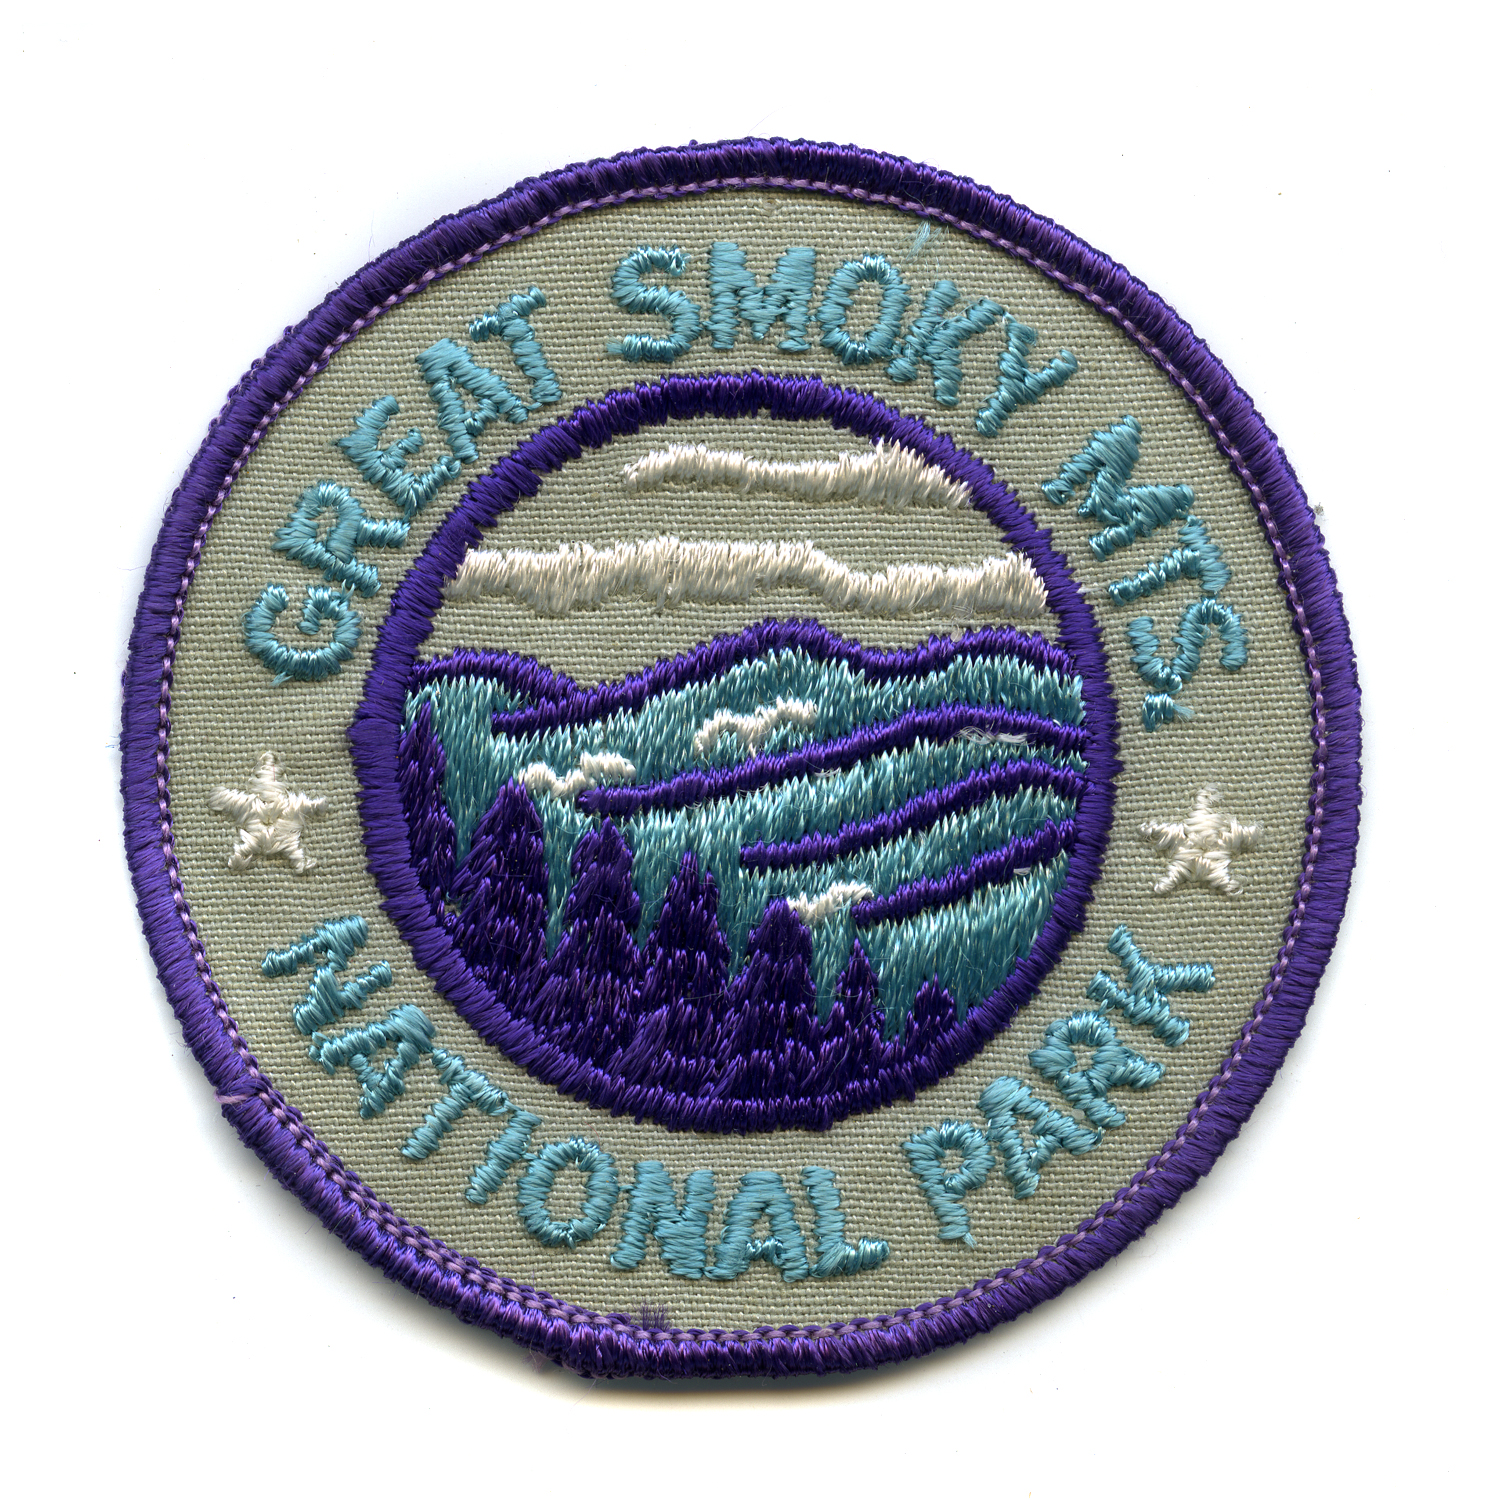 nps_patch_project_greay_smoky_mountinas_national_park_patch_3.jpg